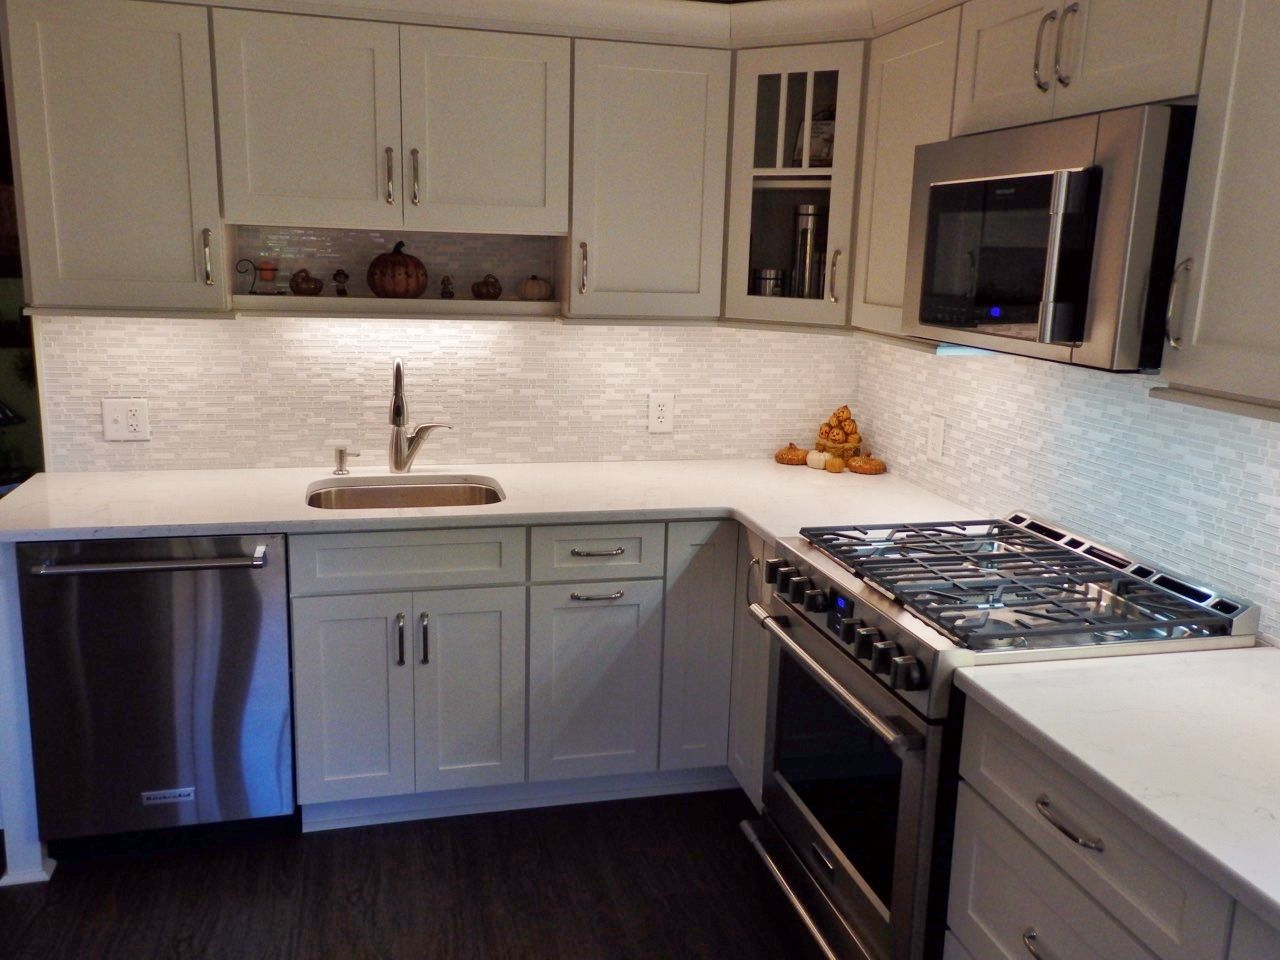 Pental Quartz Misterio Engineered Quartz Countertops With A White Glass And Stone Mosaic Tile